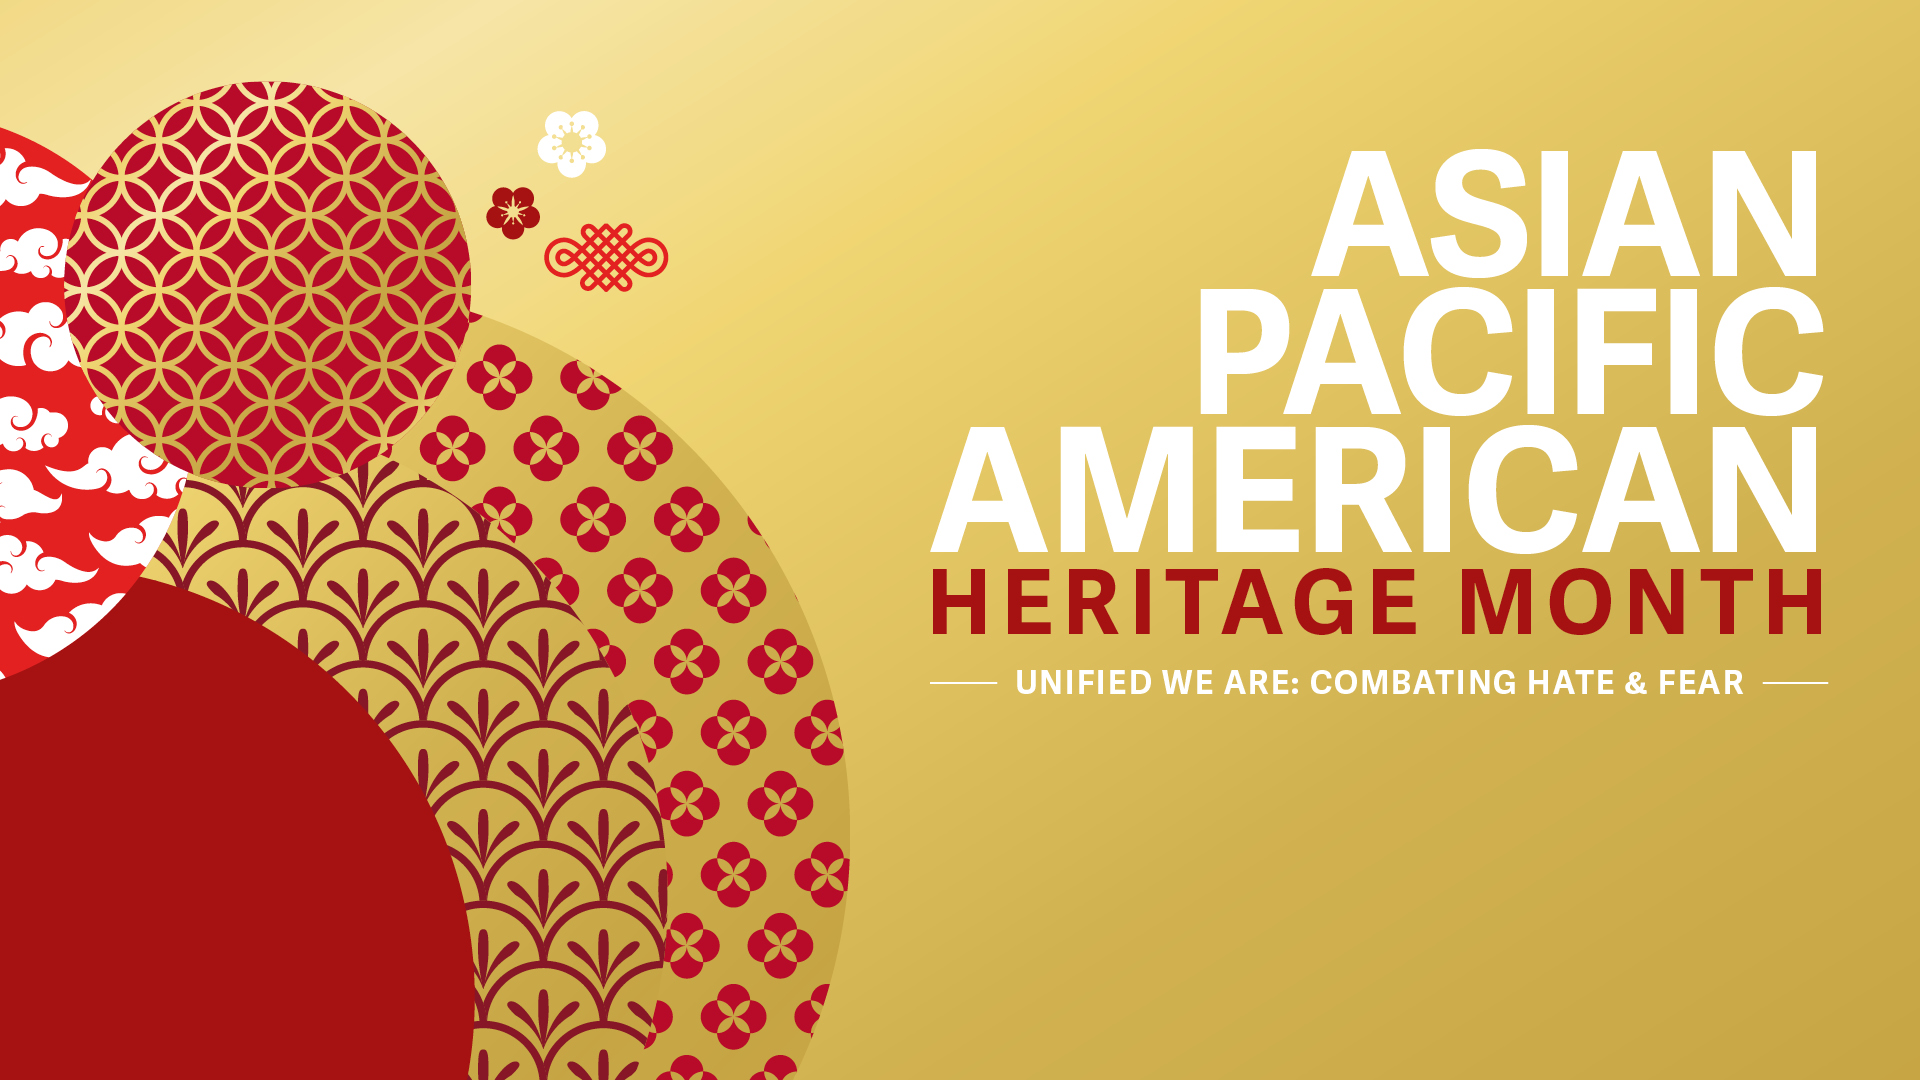 Asian Heritage Month graphic